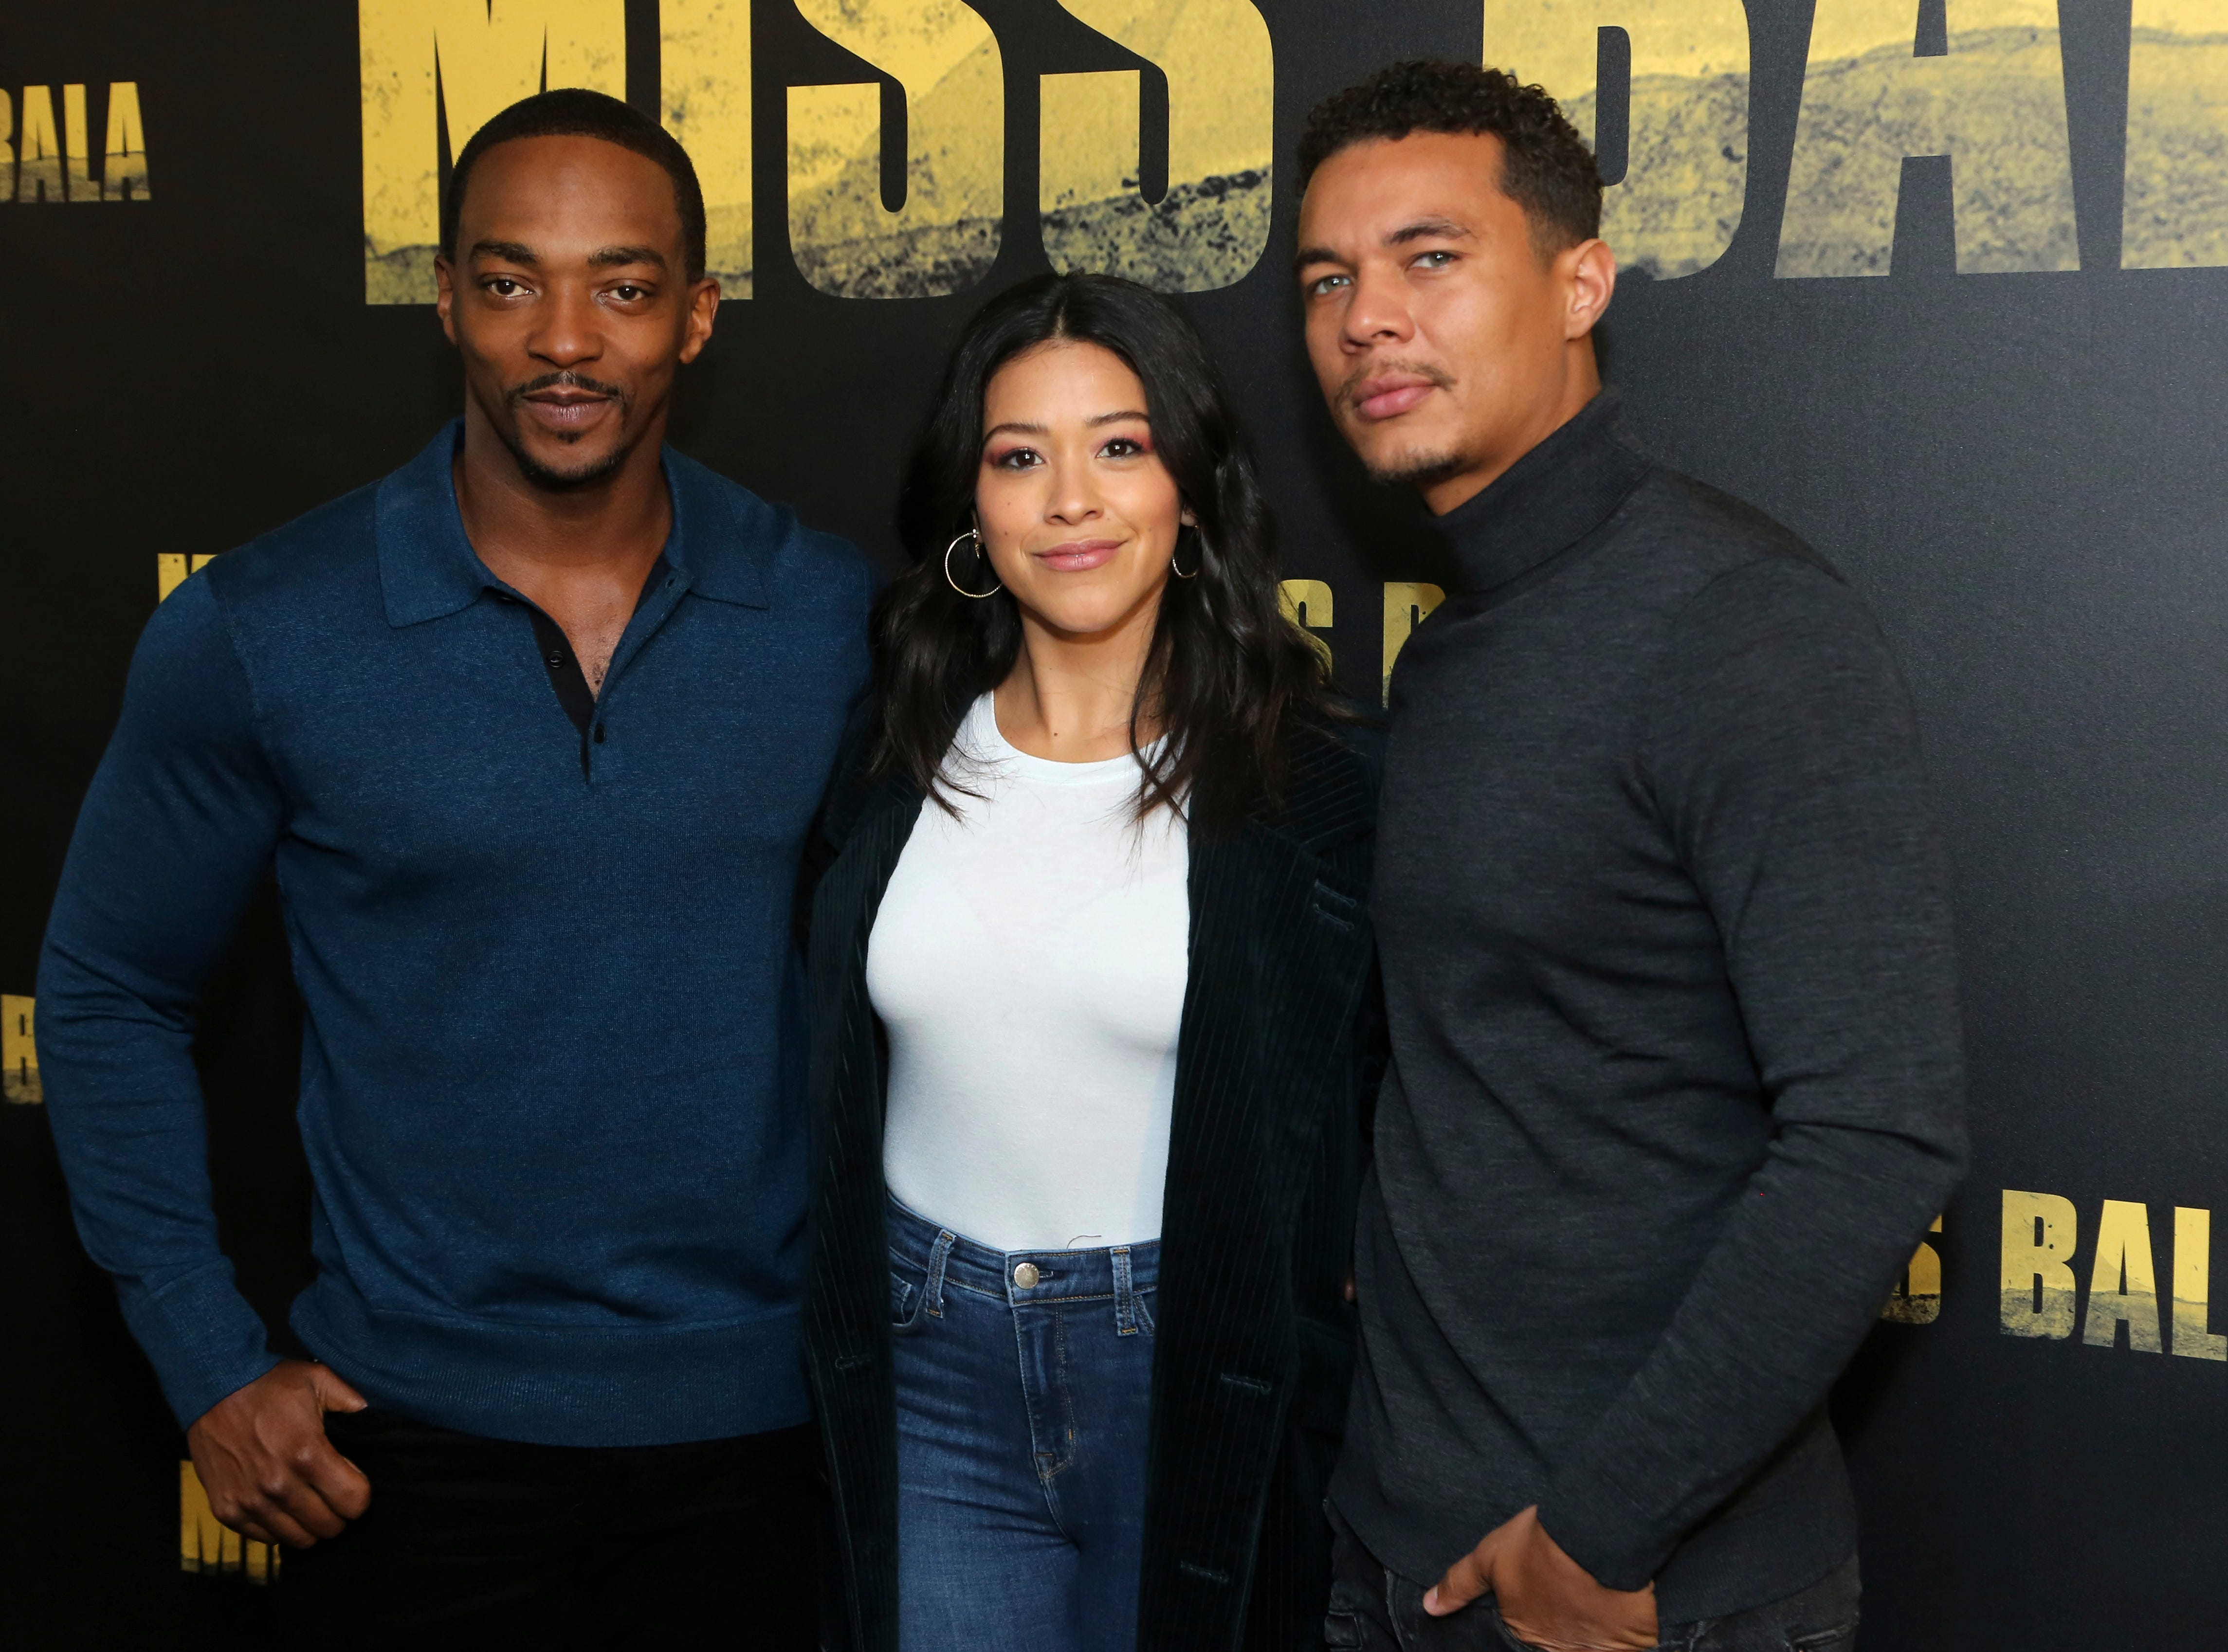 """Anthony Mackie, from left, Gina Rodriguez and Ismael Cruz Cordova, members of the cast pose for a photo at the """"Miss Bala"""" Photo Call at The London West Hollywood on Sunday, Jan. 13, 2019, in West Hollywood, Calif."""